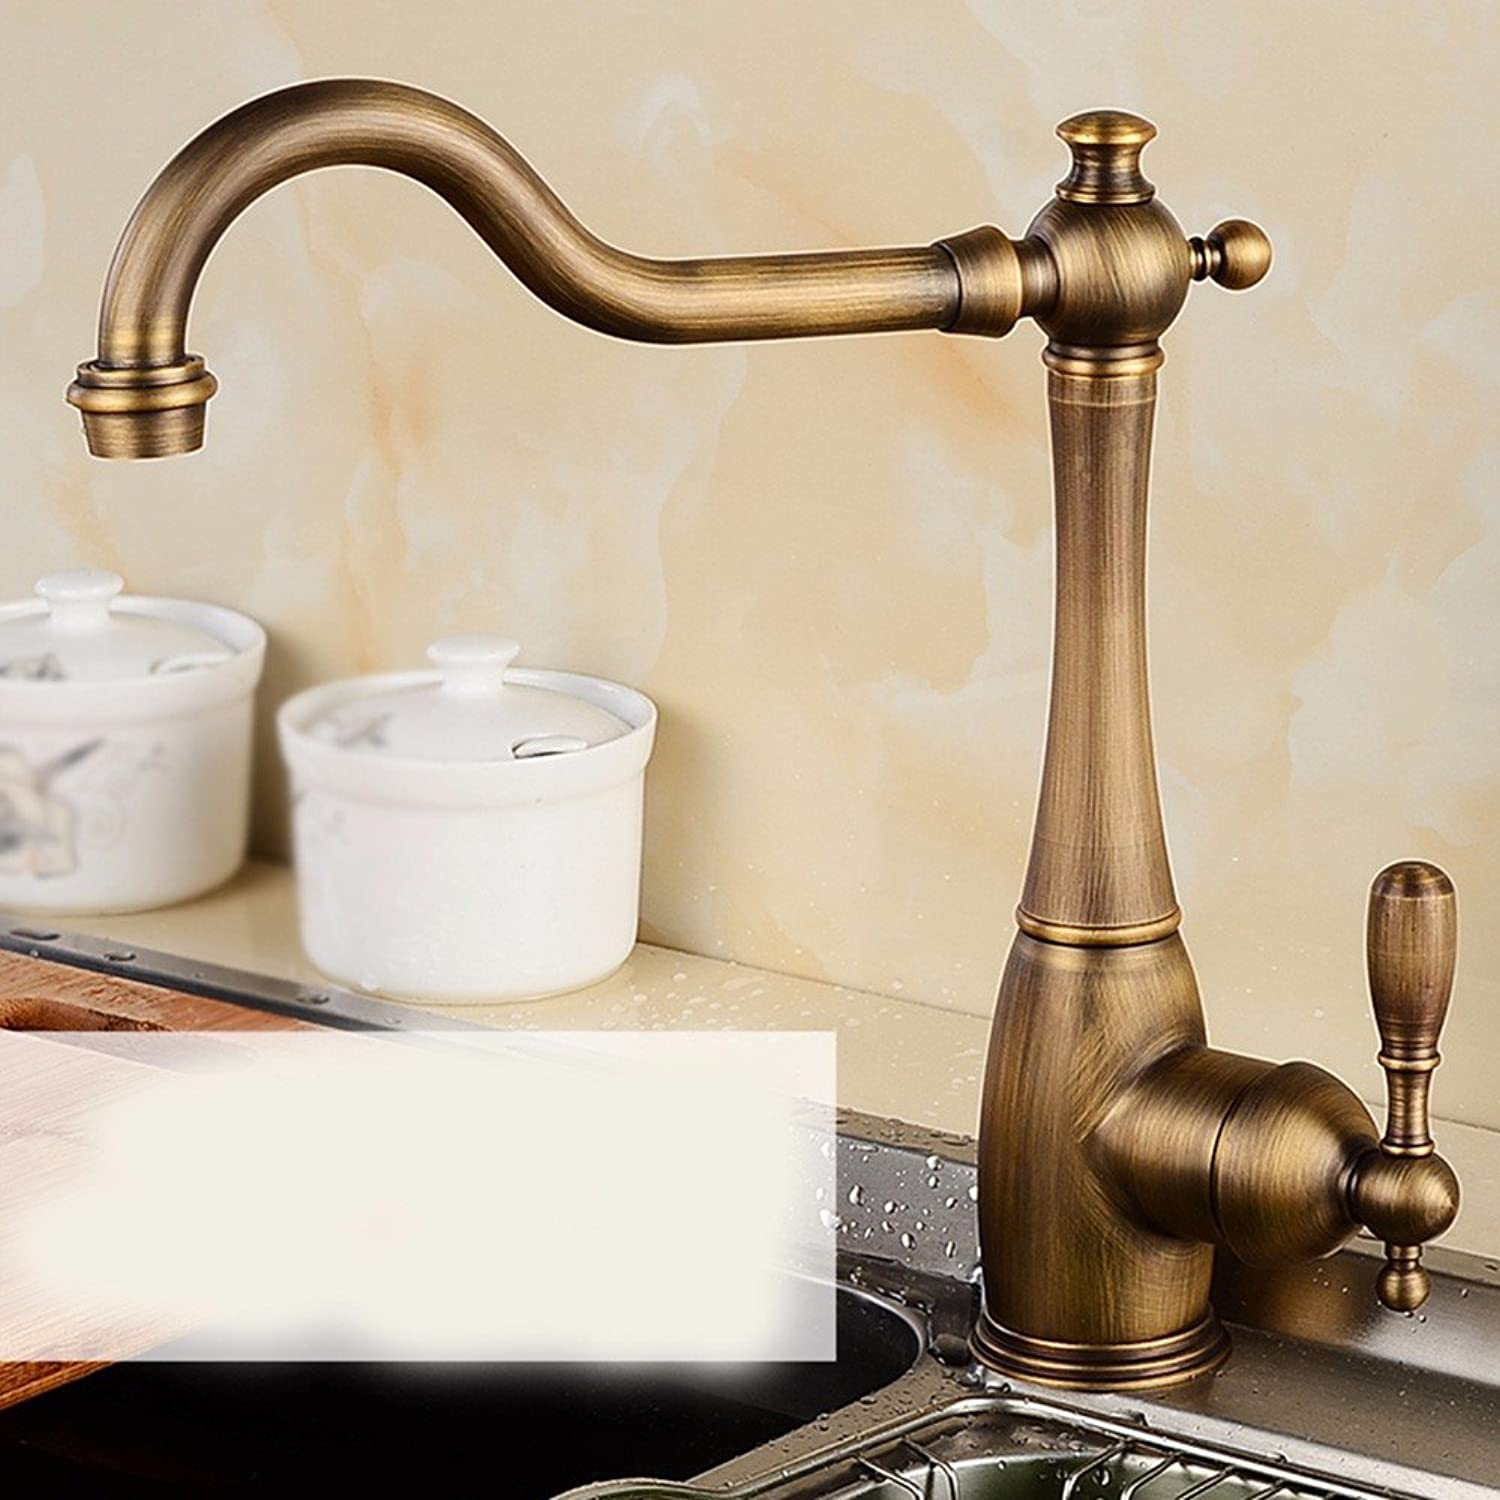 AWXJX European style retro style and all copper hot and cold gold plated sink water tap